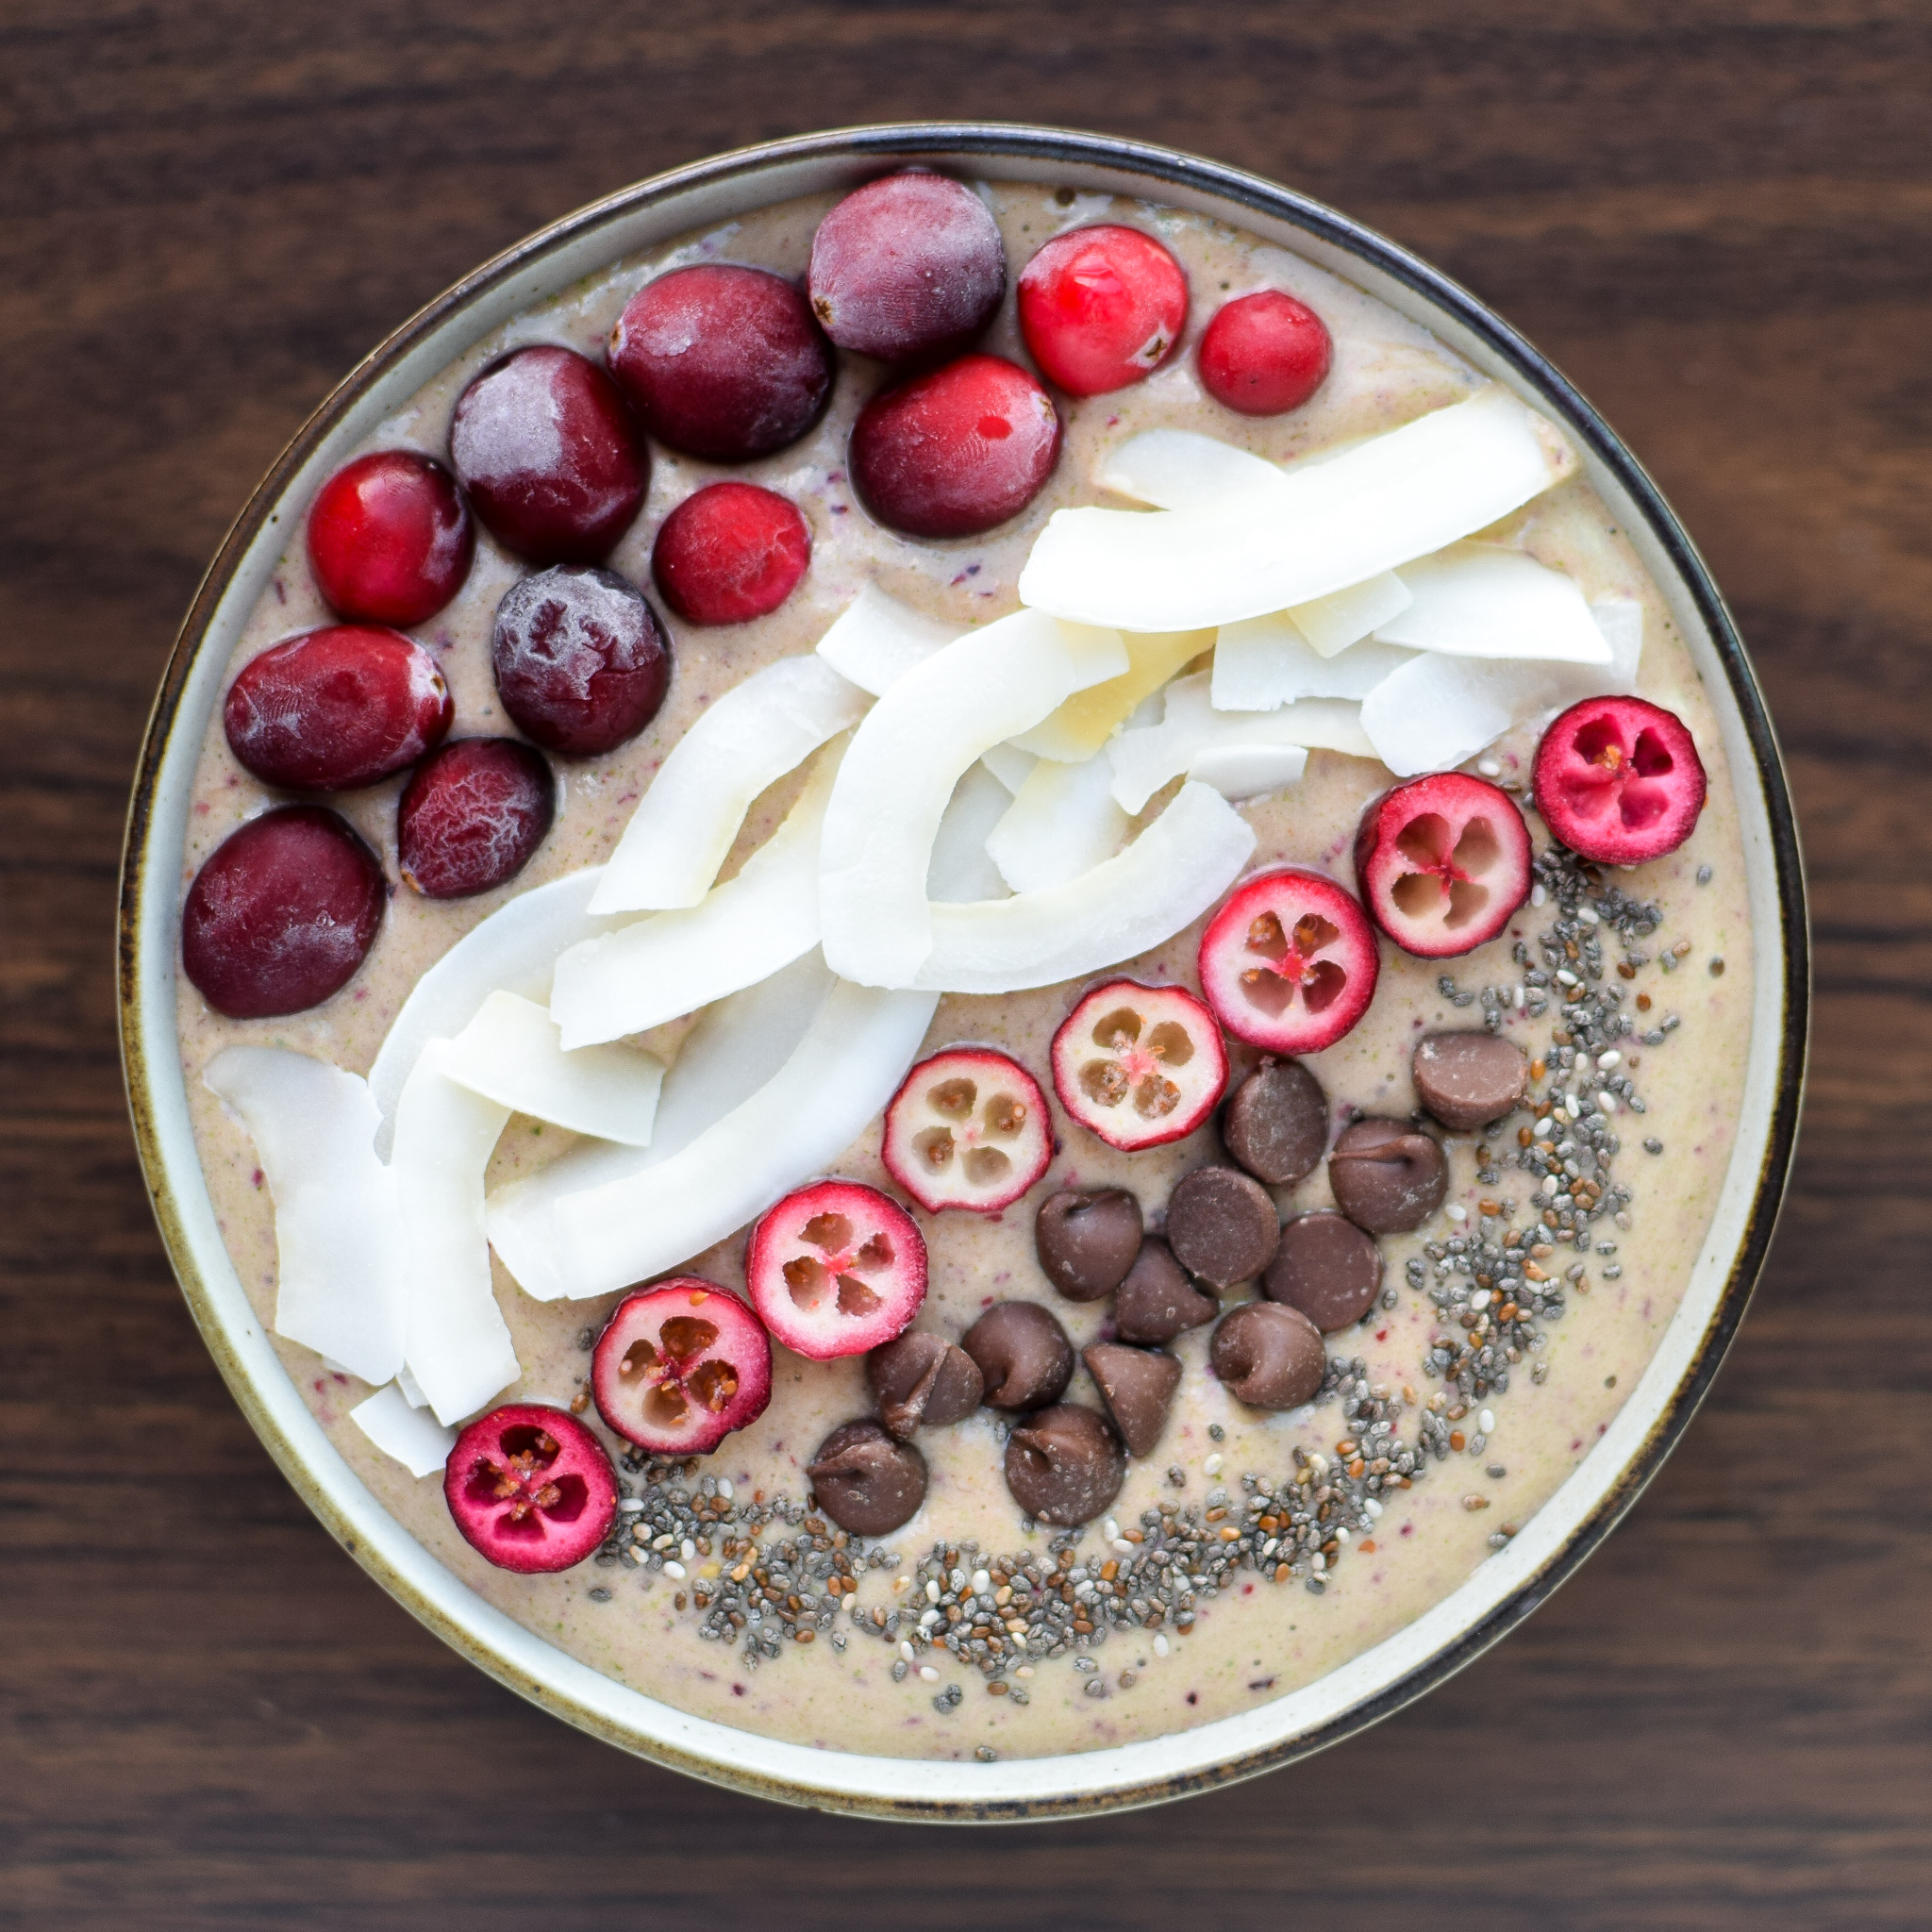 Orange Cranberry Greens Protein Smoothie recipe - You MUST try this new smoothie with happy Fall flavors - orange, cranberry, and CINNAMON make this creamy breakfast (or lunch!) complete! - ProjectMealPlan.com